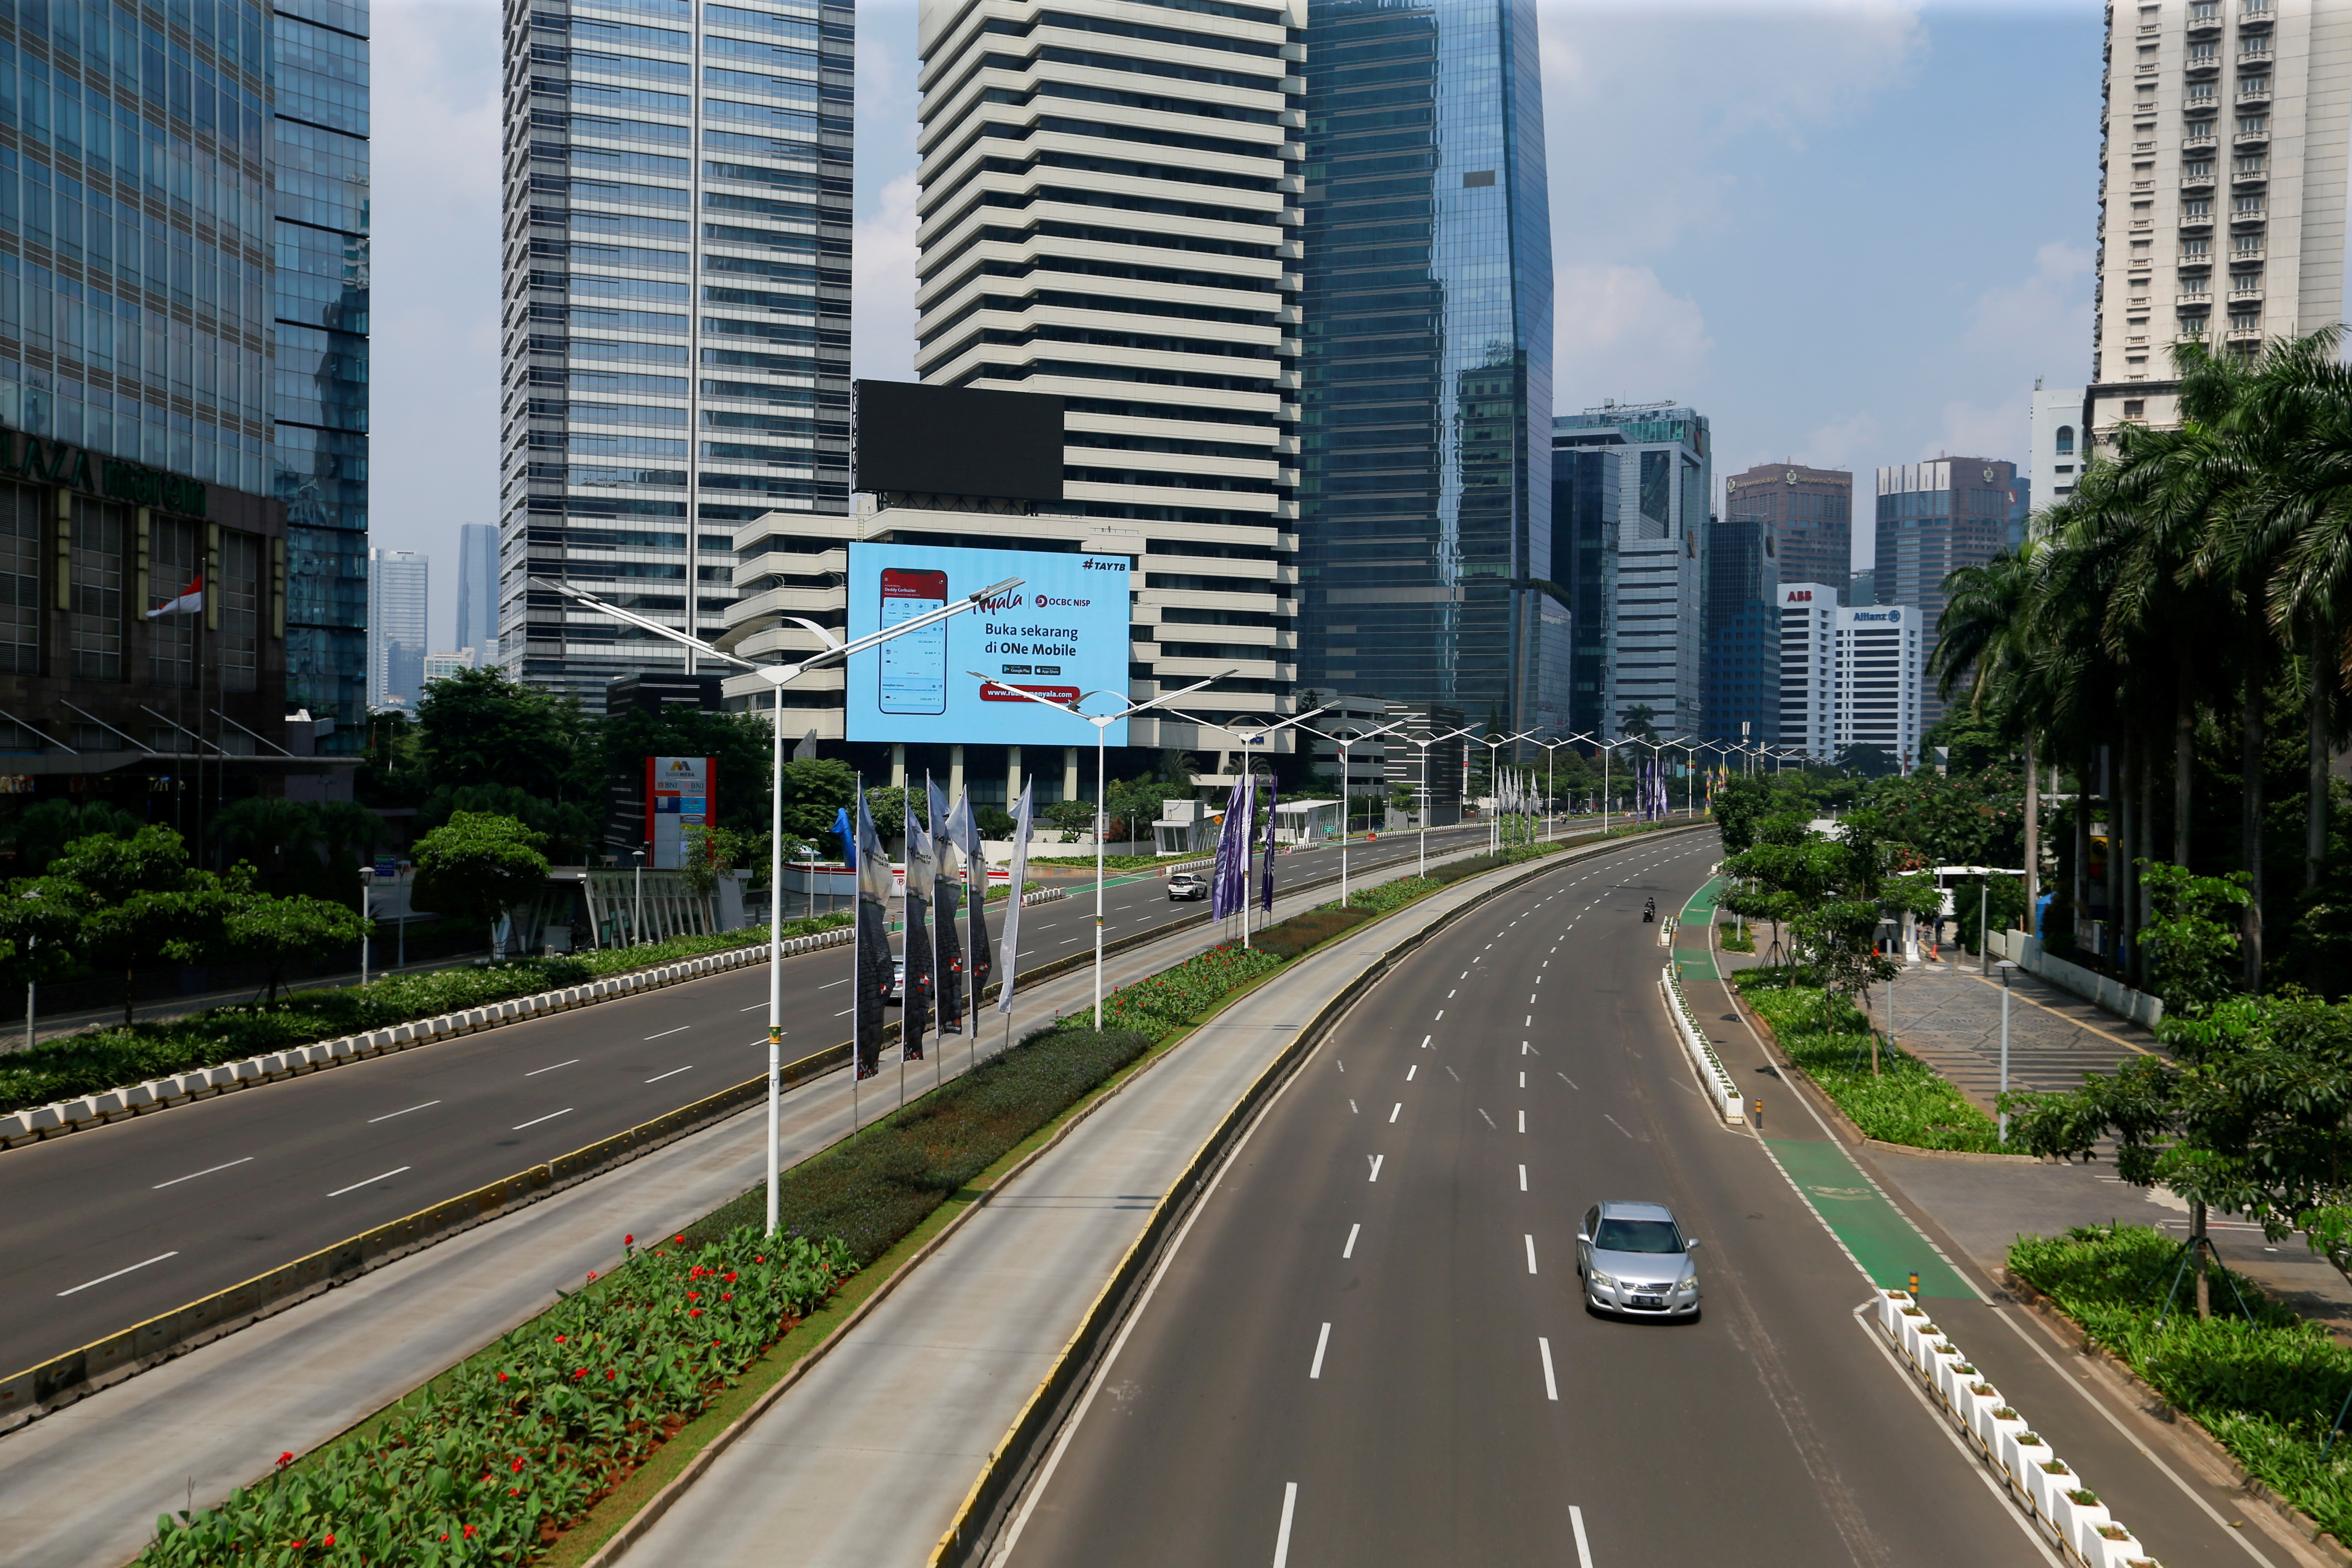 A general view shows a deserted main road during the imposition of large-scale social restrictions by the government to prevent the spread of the coronavirus disease (COVID-19) in Jakarta, Indonesia, July 3, 2021. REUTERS/Ajeng Dinar Ulfiana/File Photo